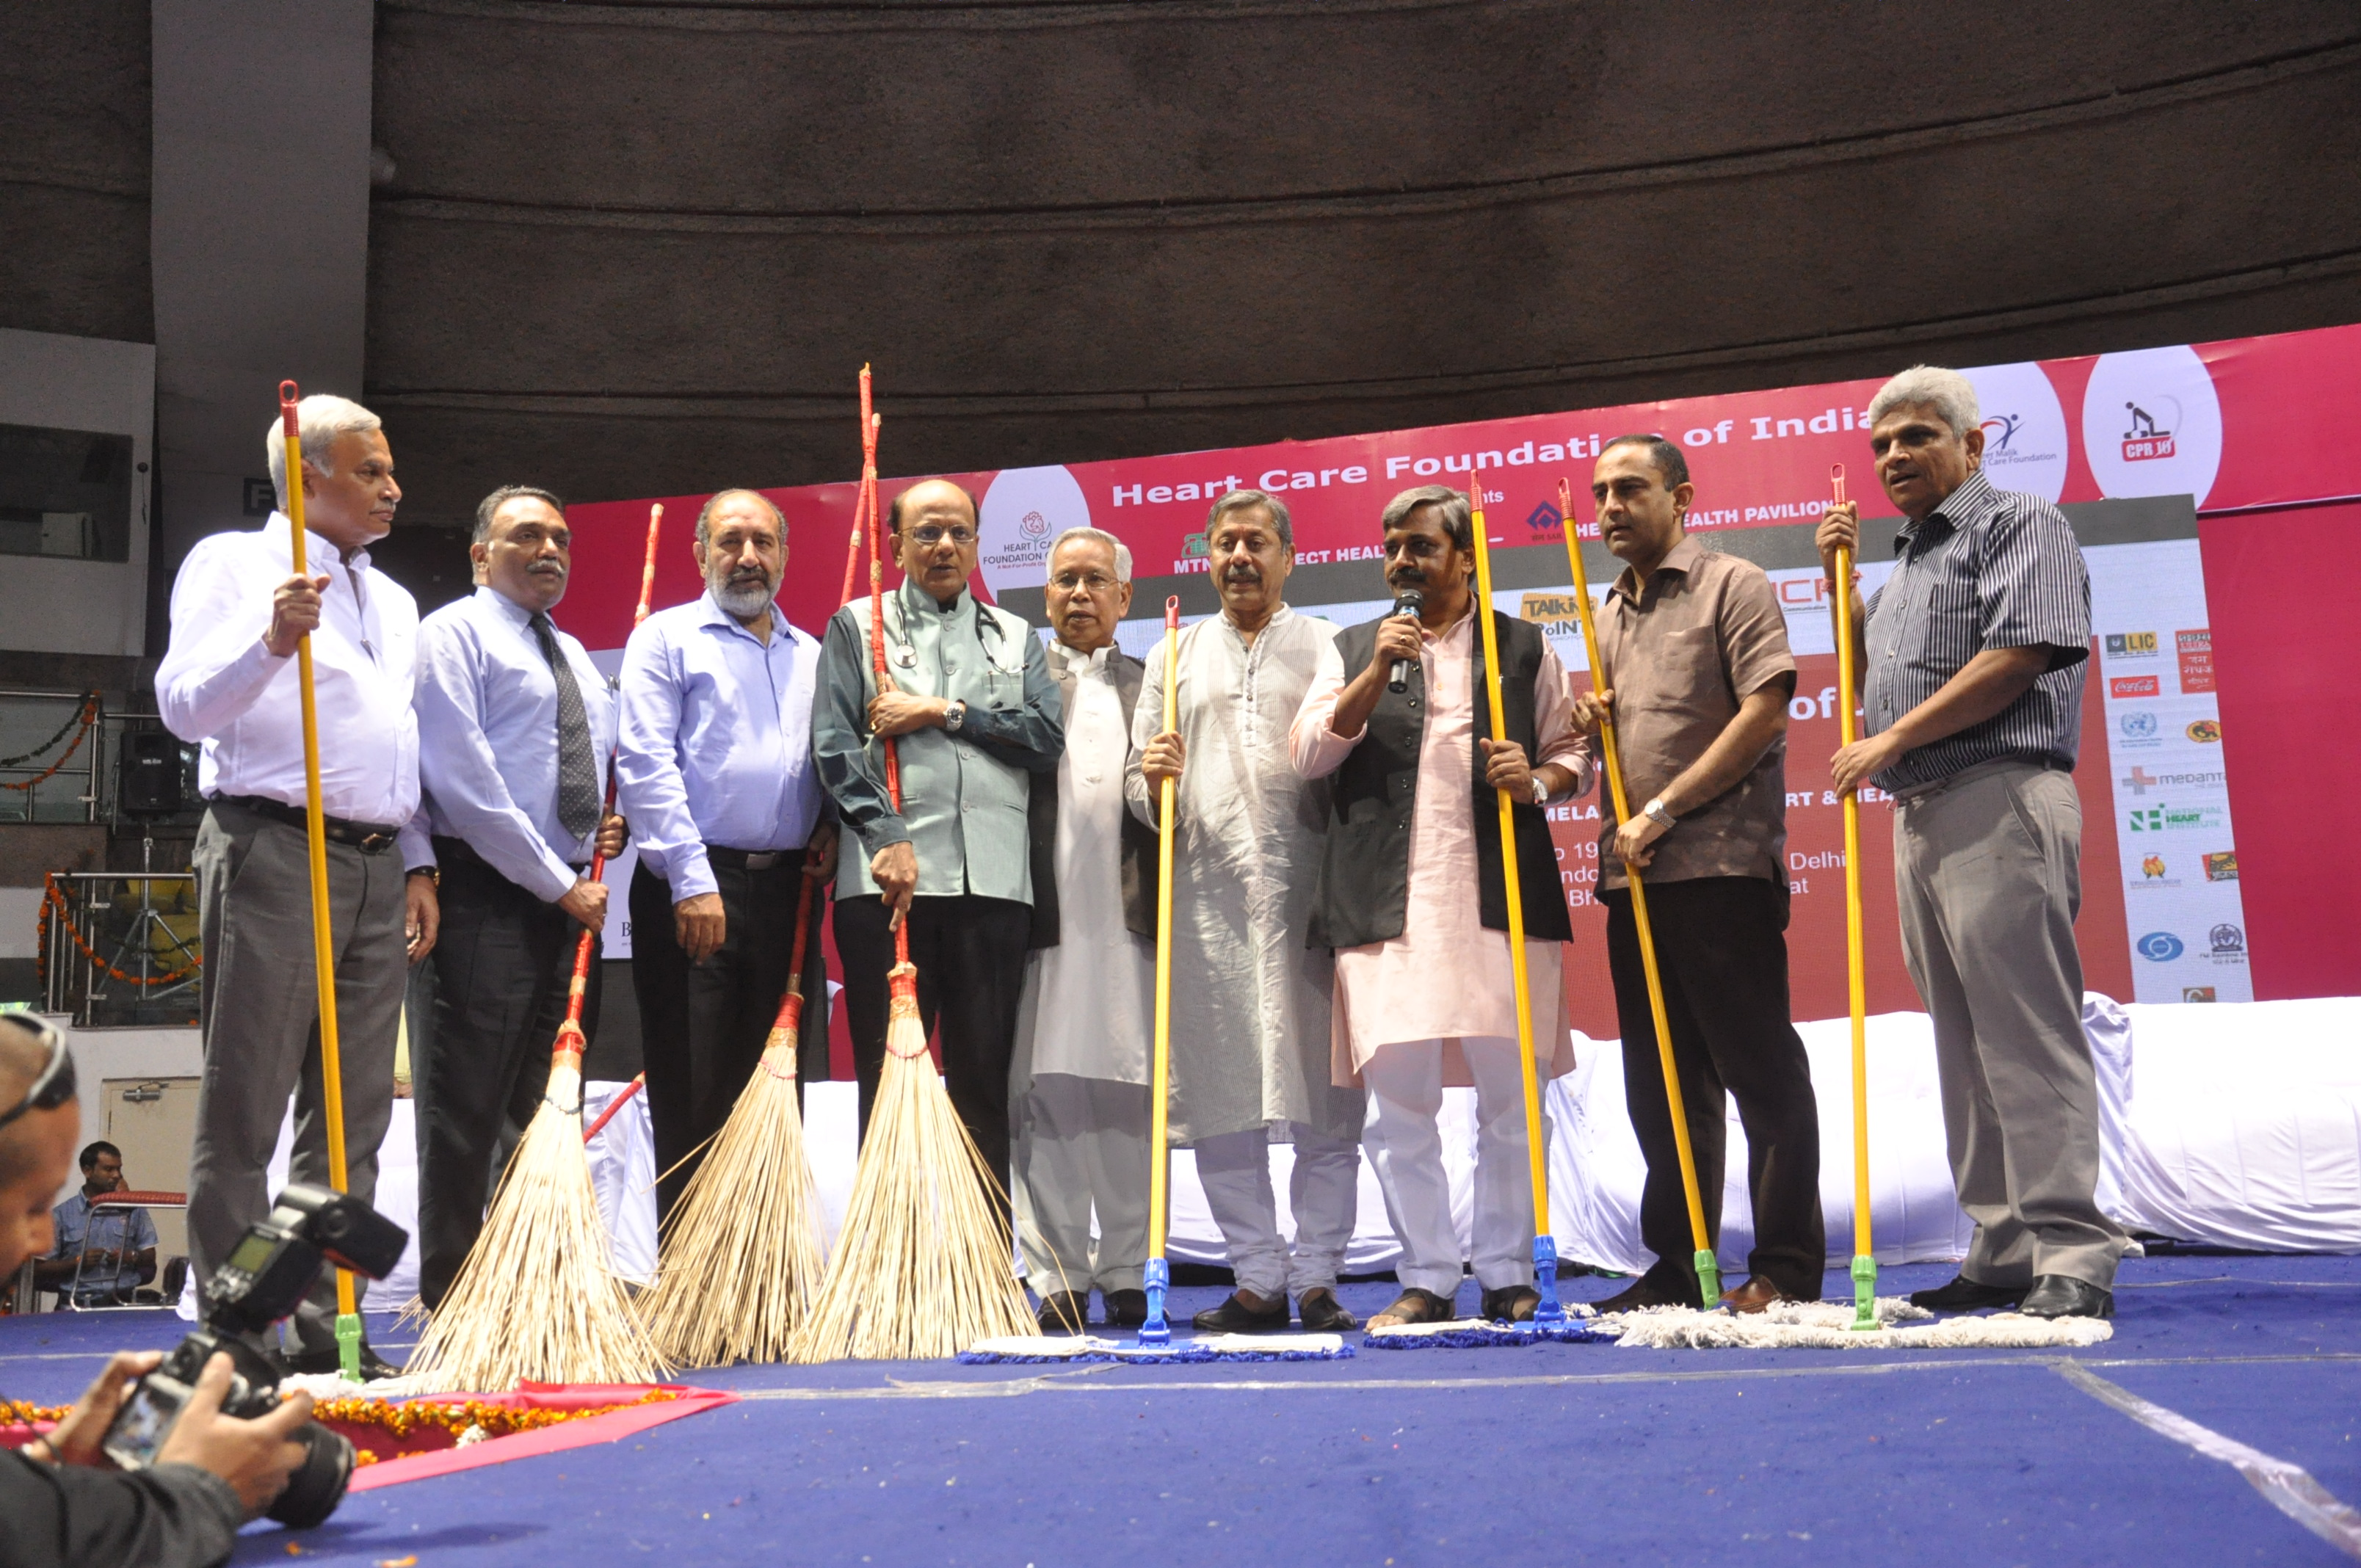 L-R Dr.Naveen Dang, Dr. D.K Deewan, Dr. Girish Tyagi, Dr. KK Aggarwal,Mr.Thokchom Meinya, Dr. Naresh Trehan, Mr. Satish Upadhyay,Dr.Anupam Sibbal and Dr. Dr.P.K. Sharma